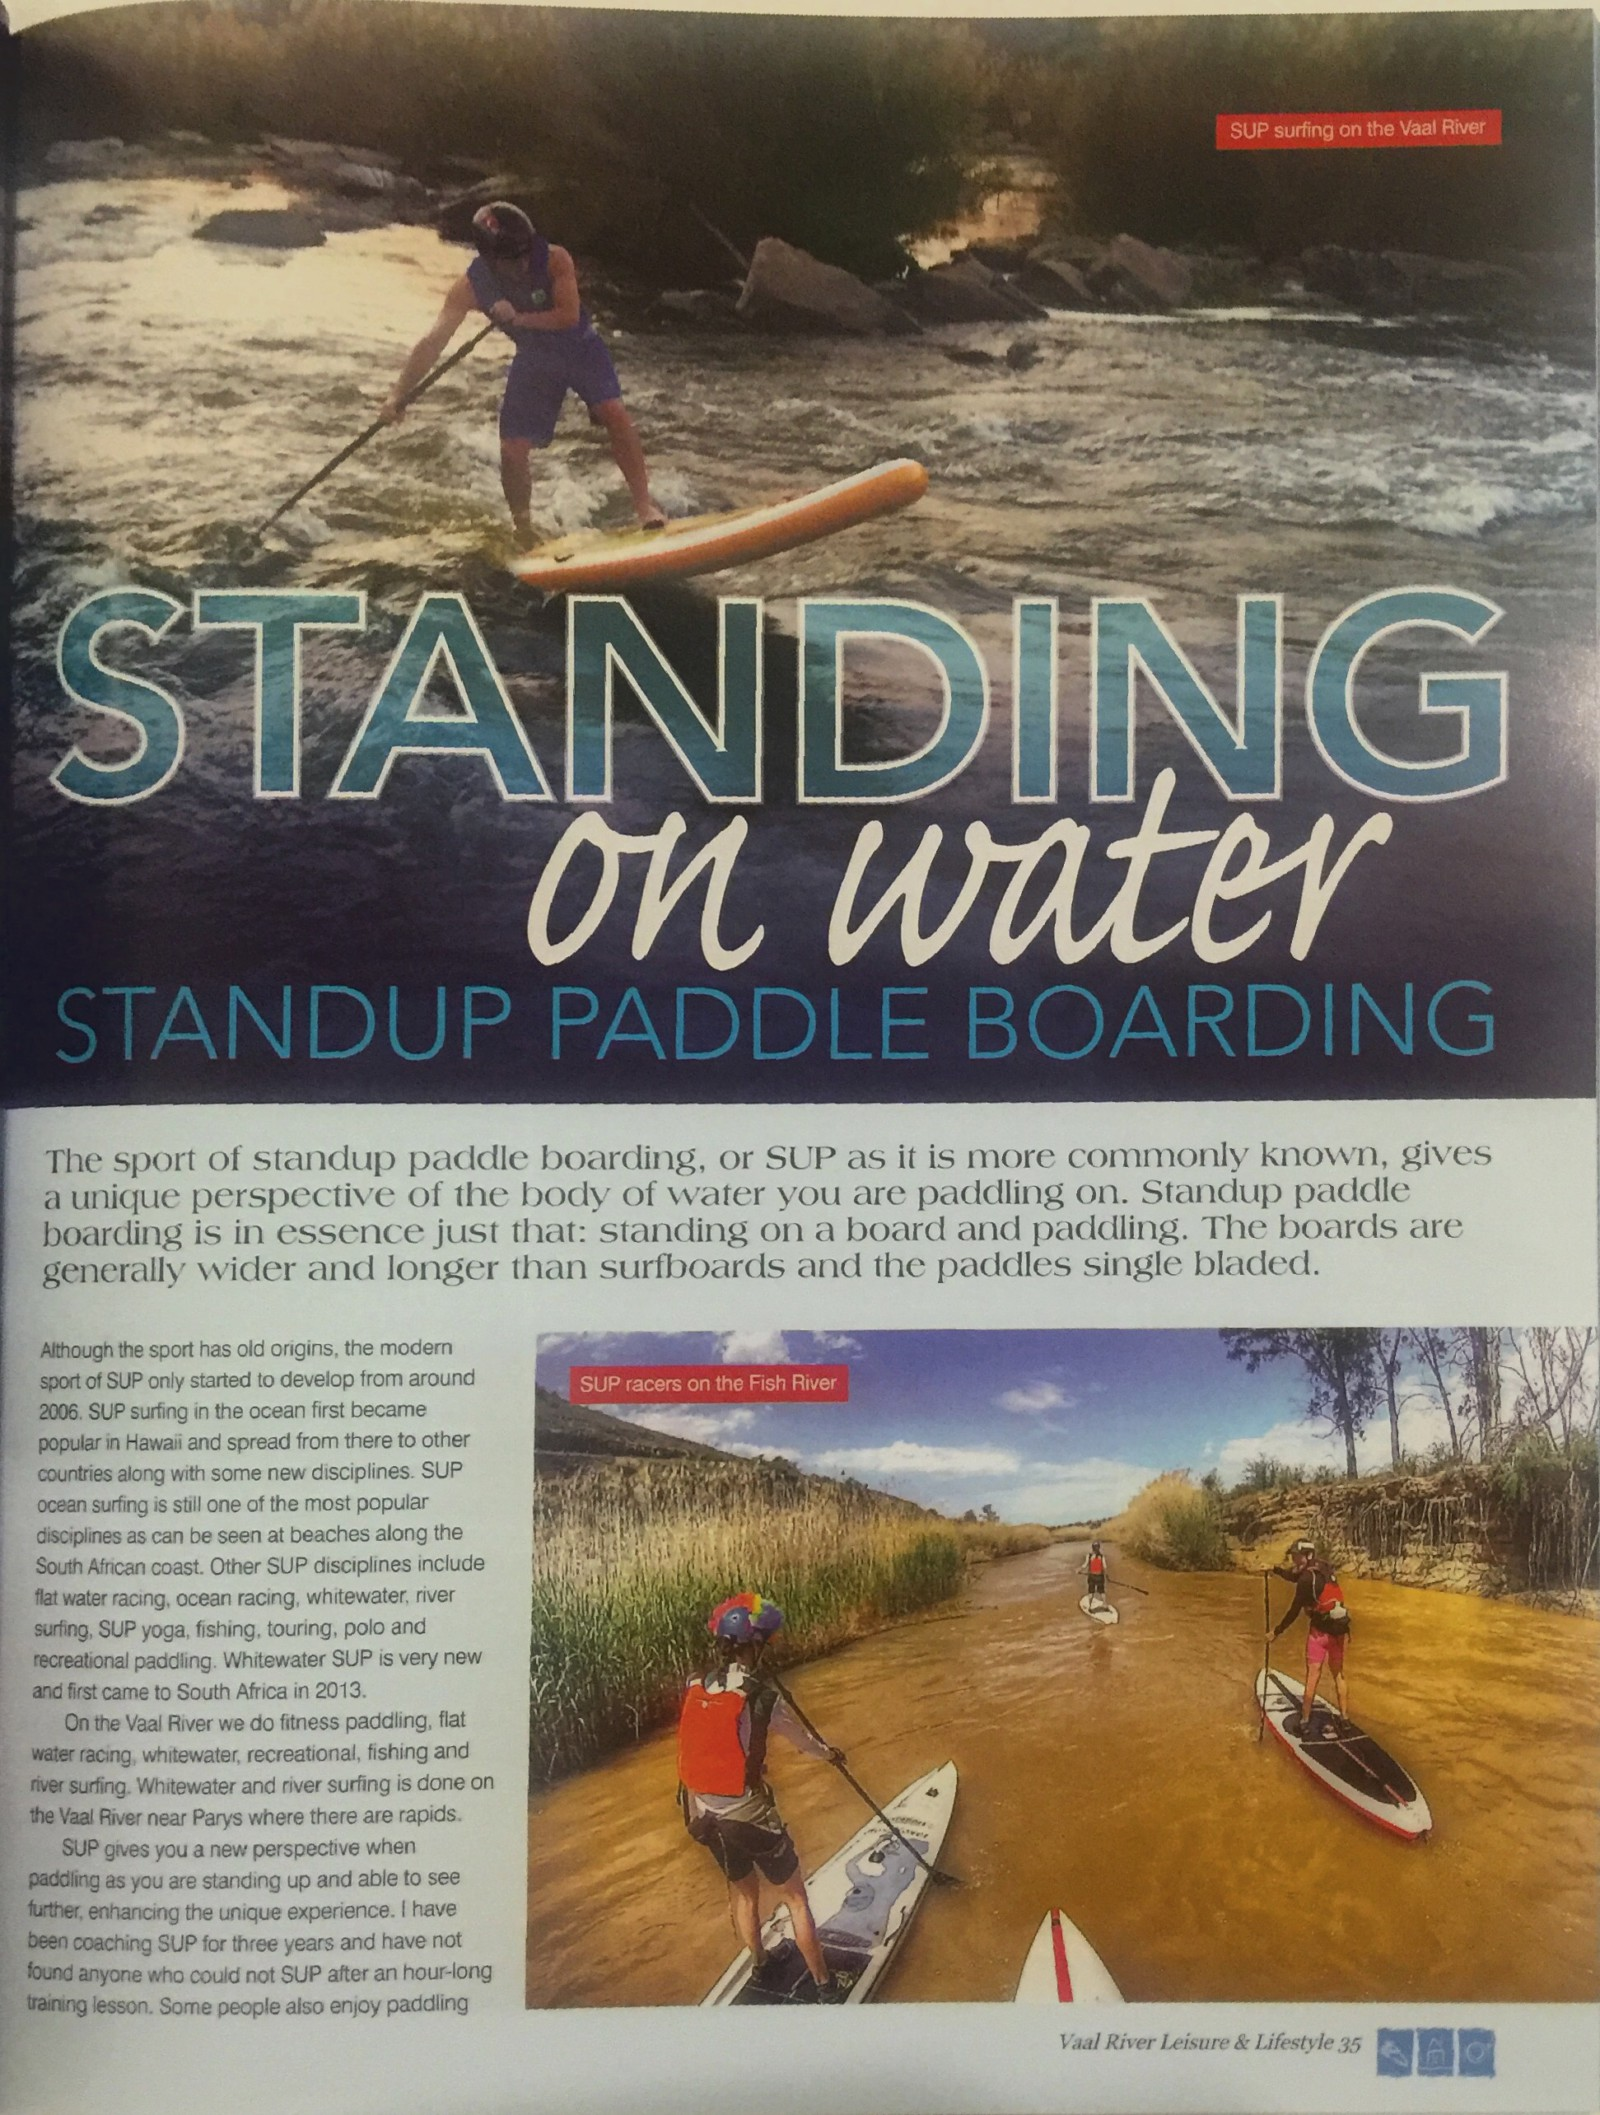 SUP in the Vaal River Leisure and Lifestyle Magazine